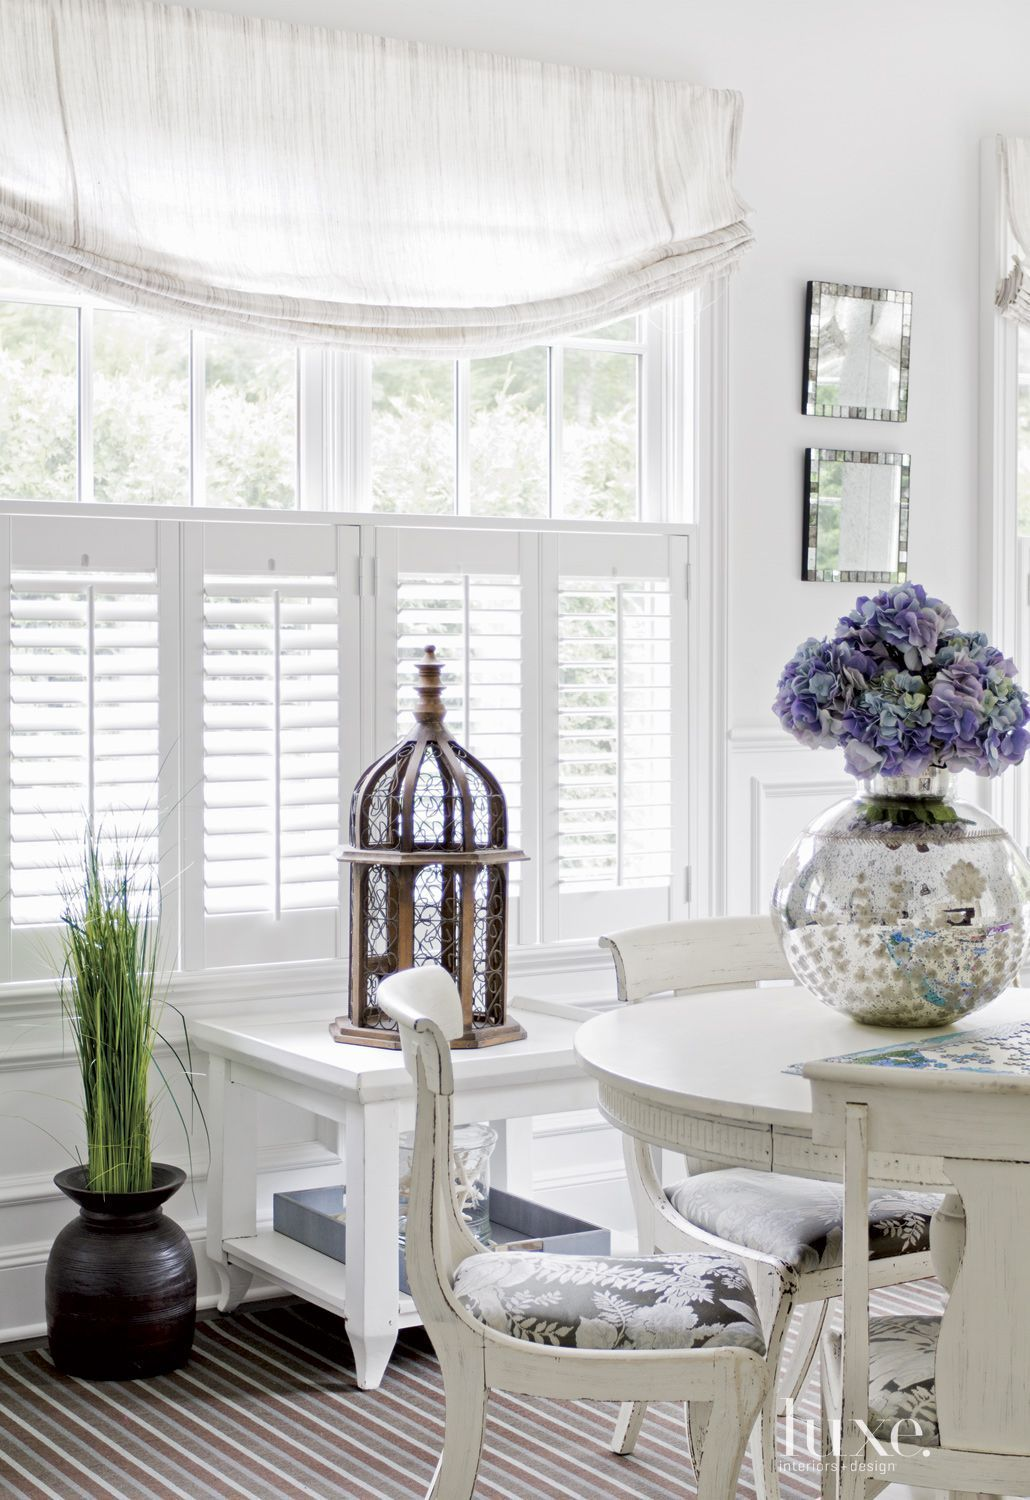 Image Gallery Luxe Interiors Design Alison Waite Image Gallery Luxe Interiors Design Traditional Family Rooms Living Room New York Family Room